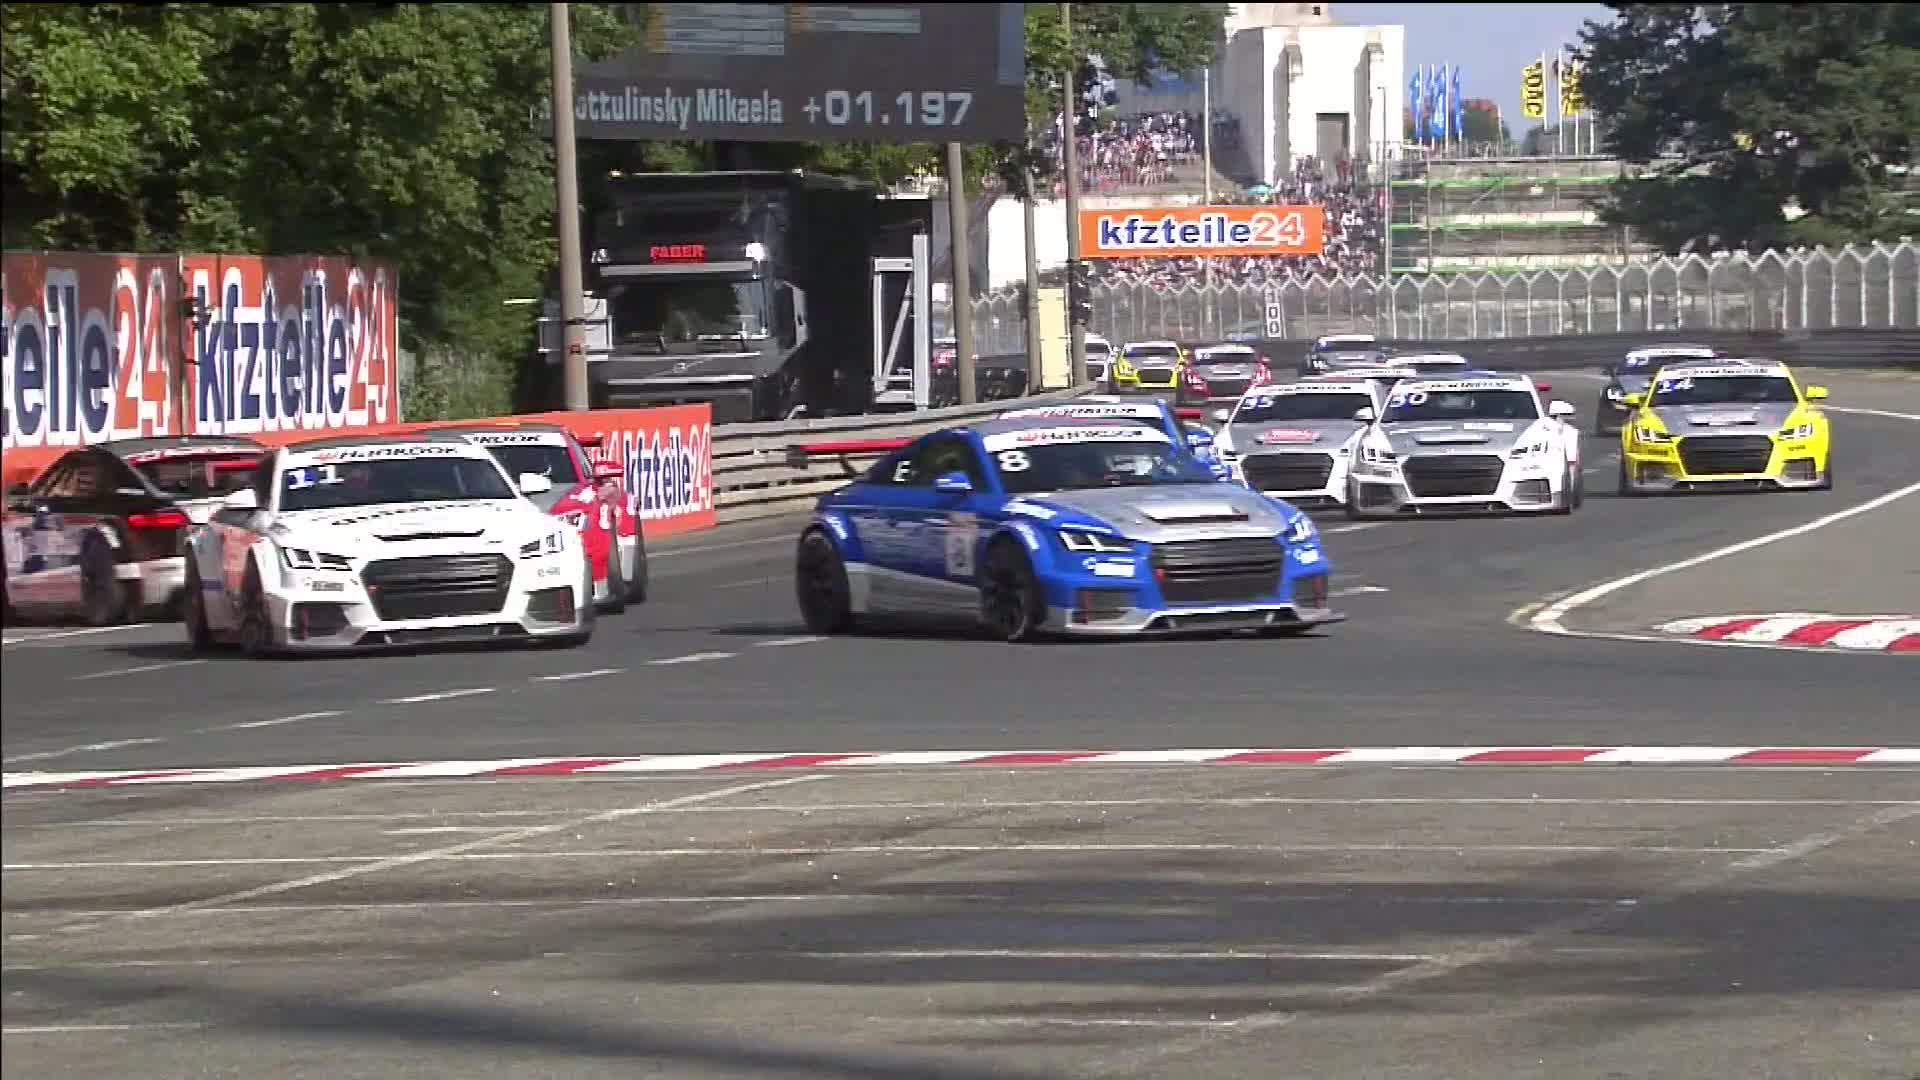 60 Seconds of Audi Sport 48/2015 - Audi Sport TT Cup Norisring, Race 2